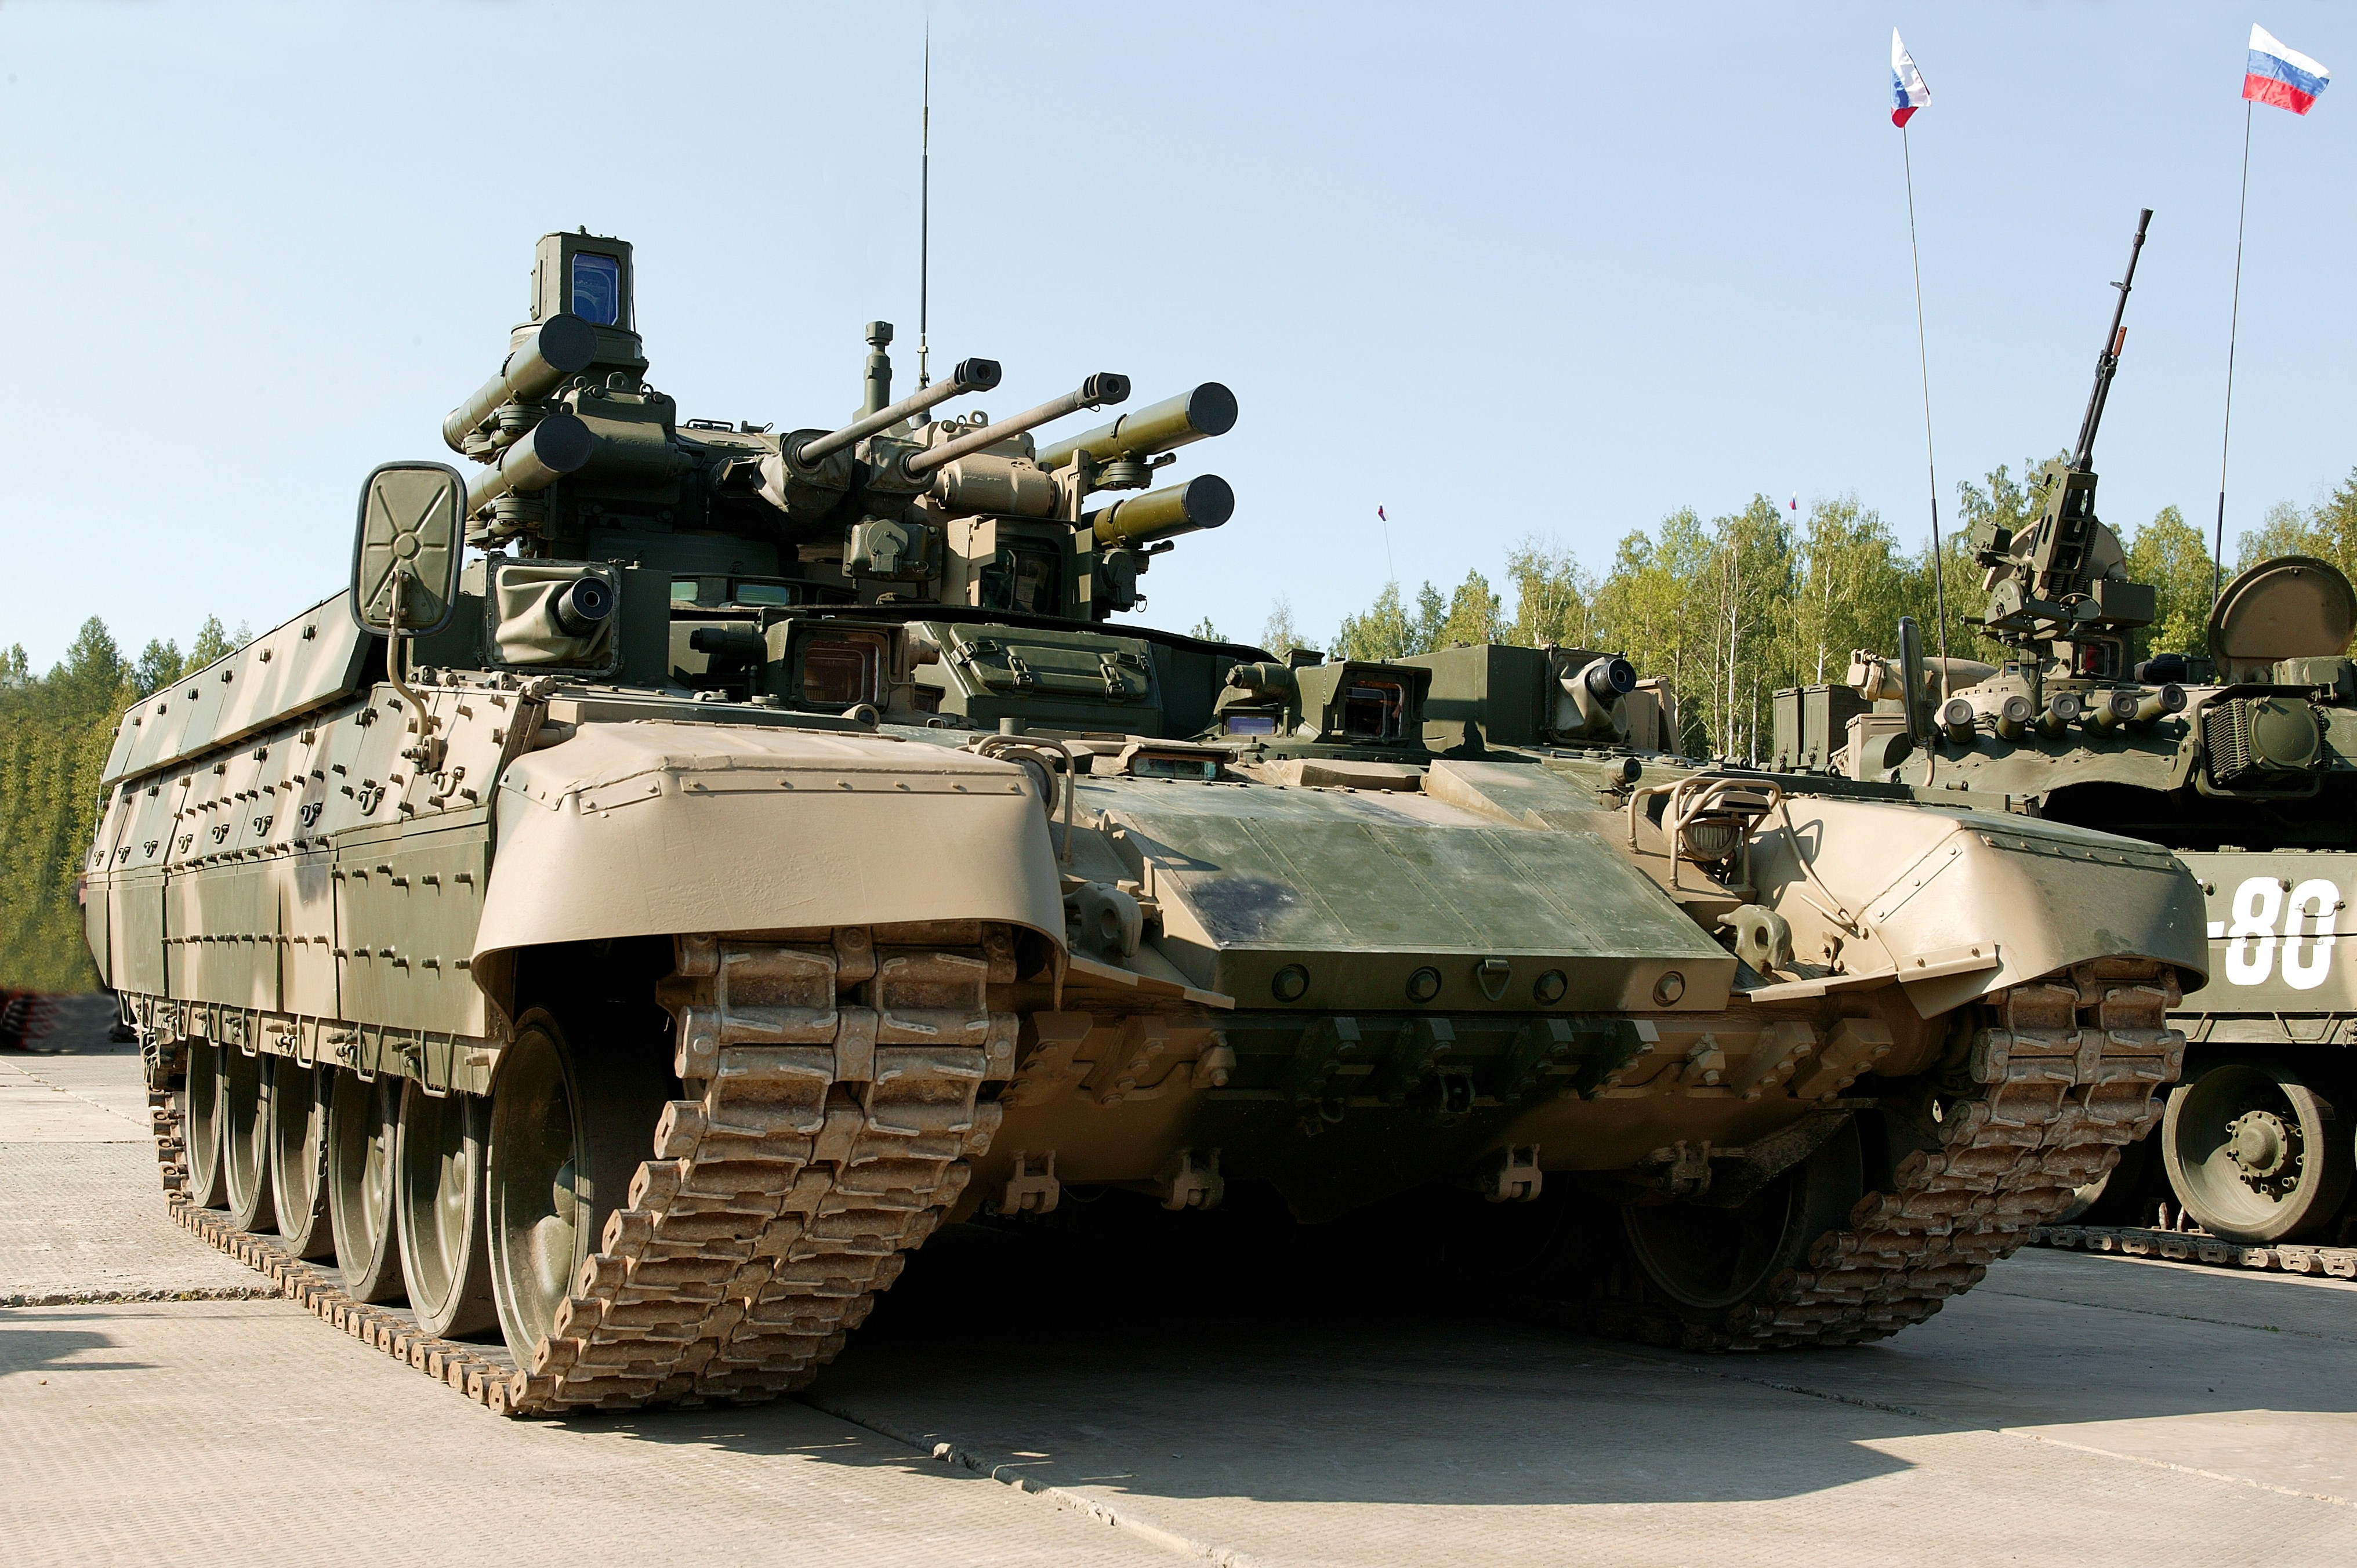 games helicopter with T Terminator  T 72 Tank Support  Bat Vehicle Russian 3420 on Russia Build Helicopter Carriers Replace French Mistrals also 109 together with Harry Grounded Prince Stay Army Never Fly  bat Helicopters Again together with 21062 additionally 3055 3057.